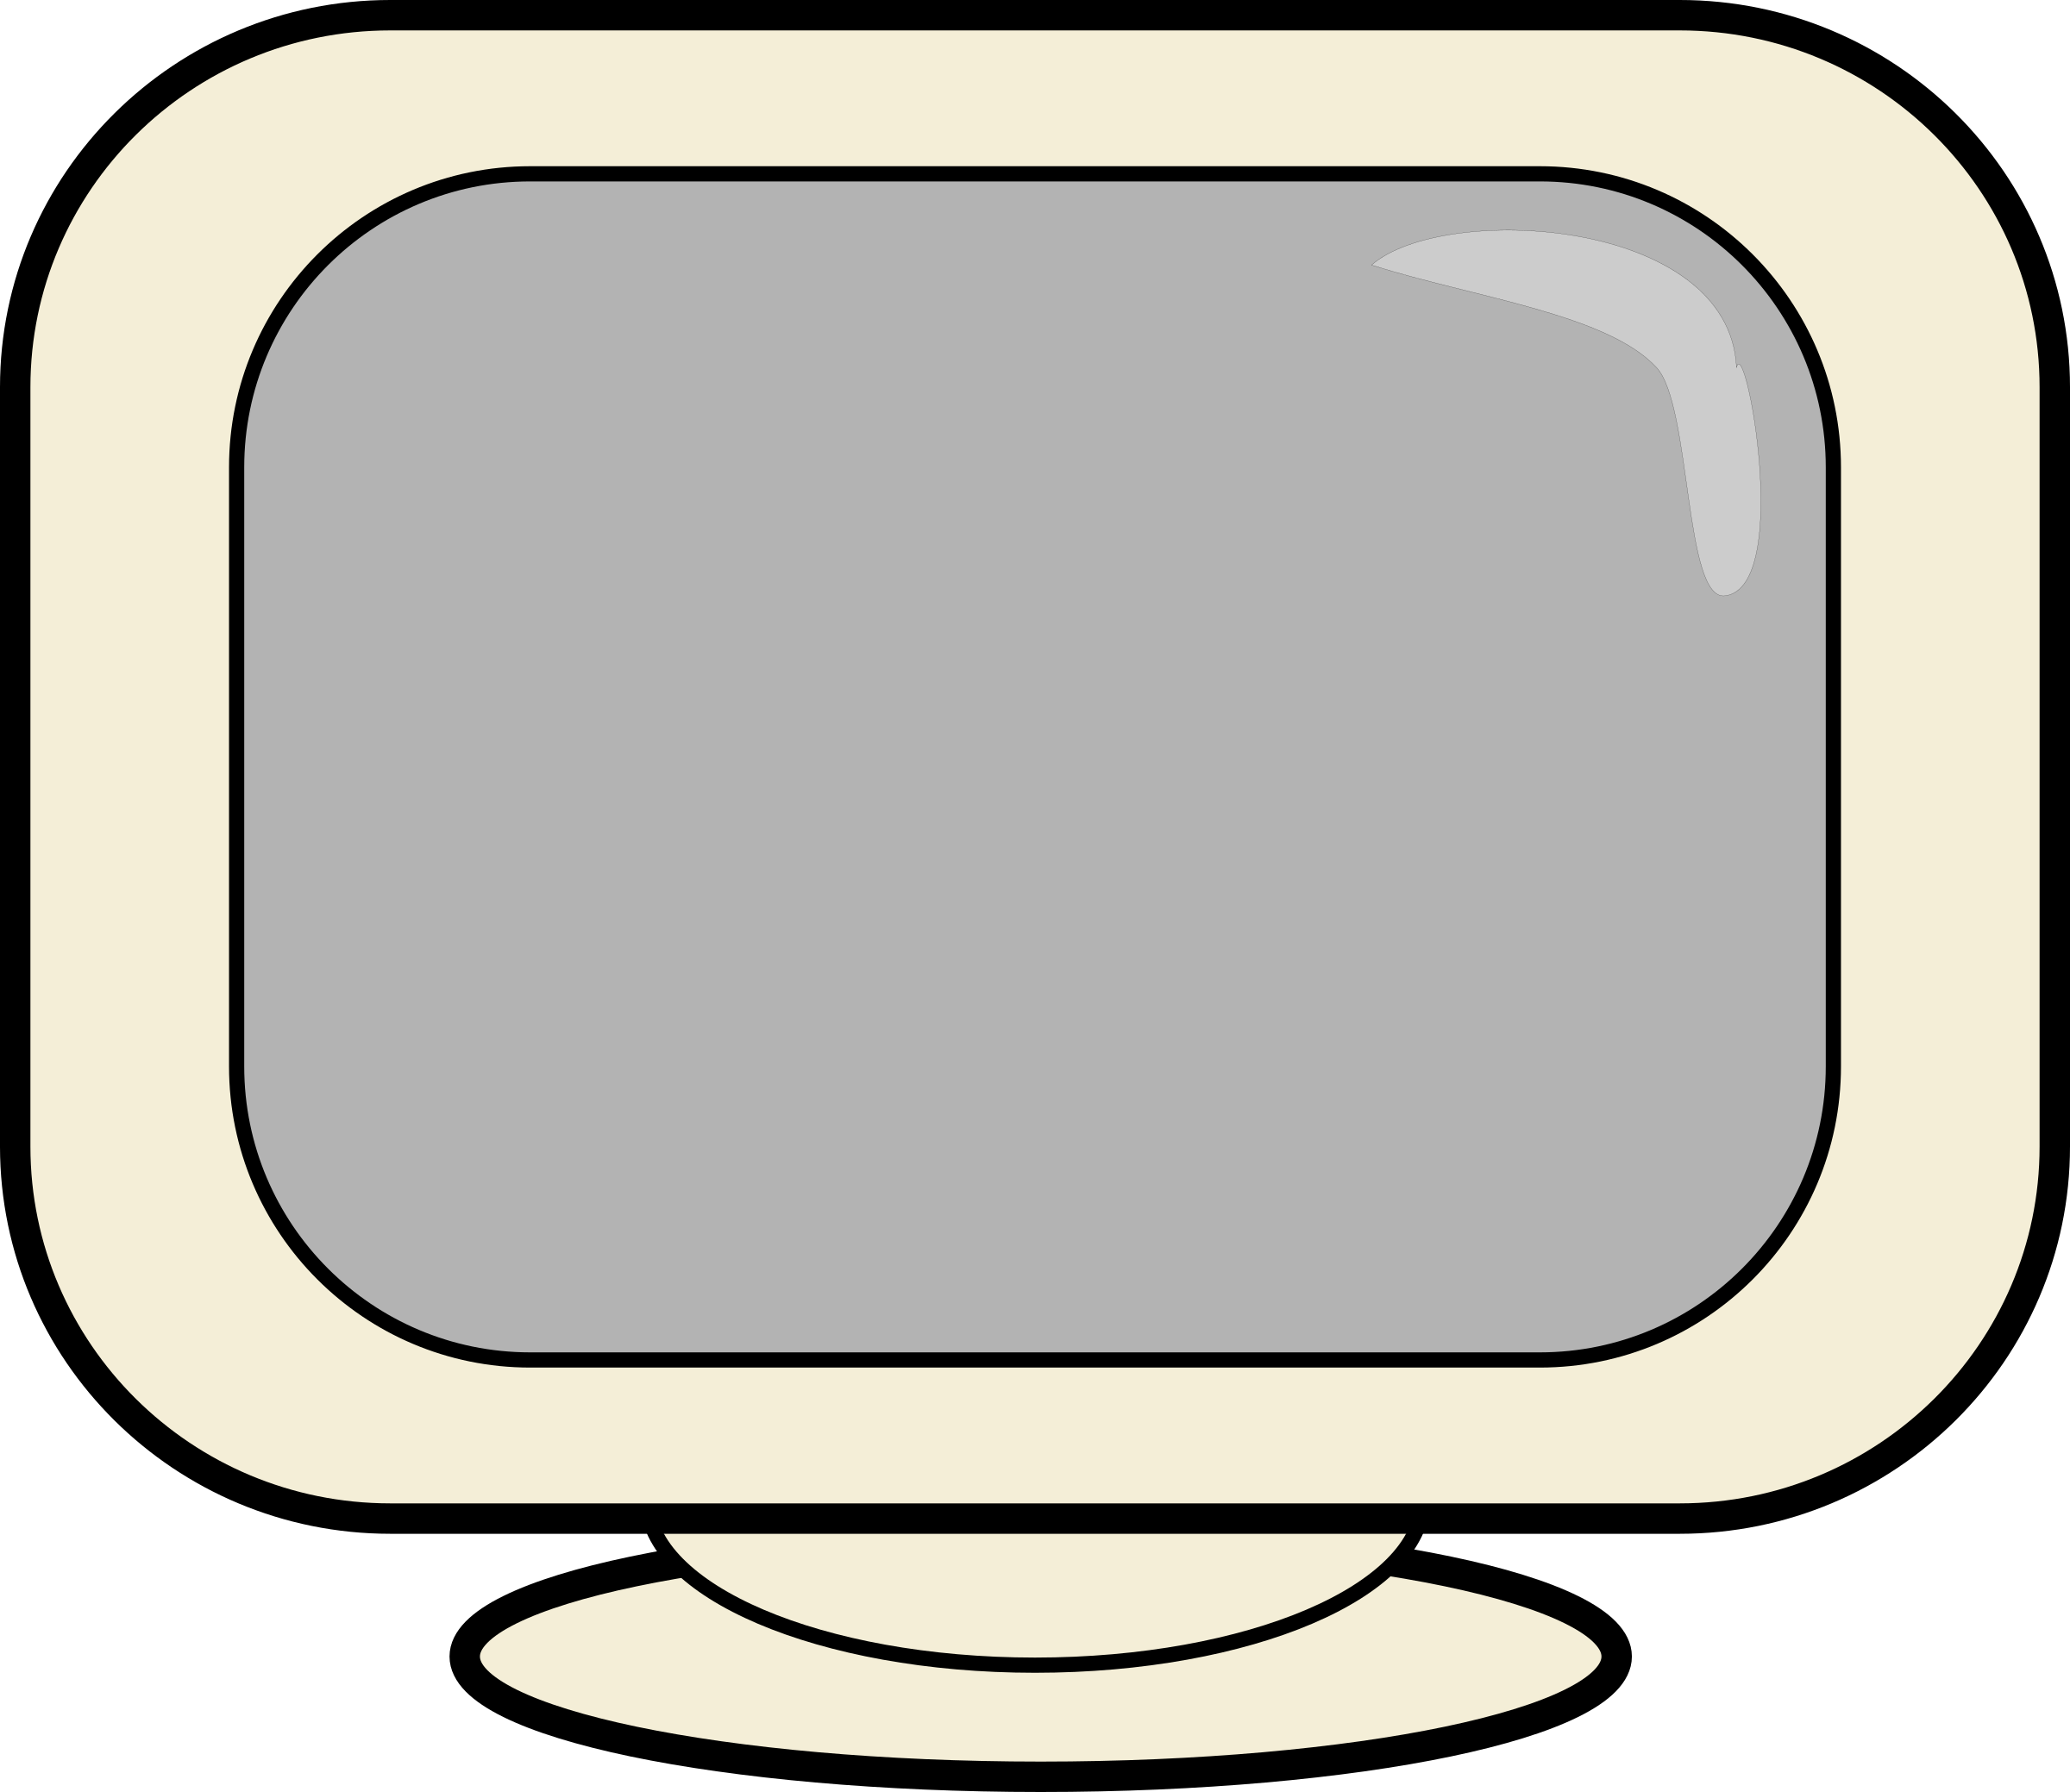 Screen clipart computer background. Big image png